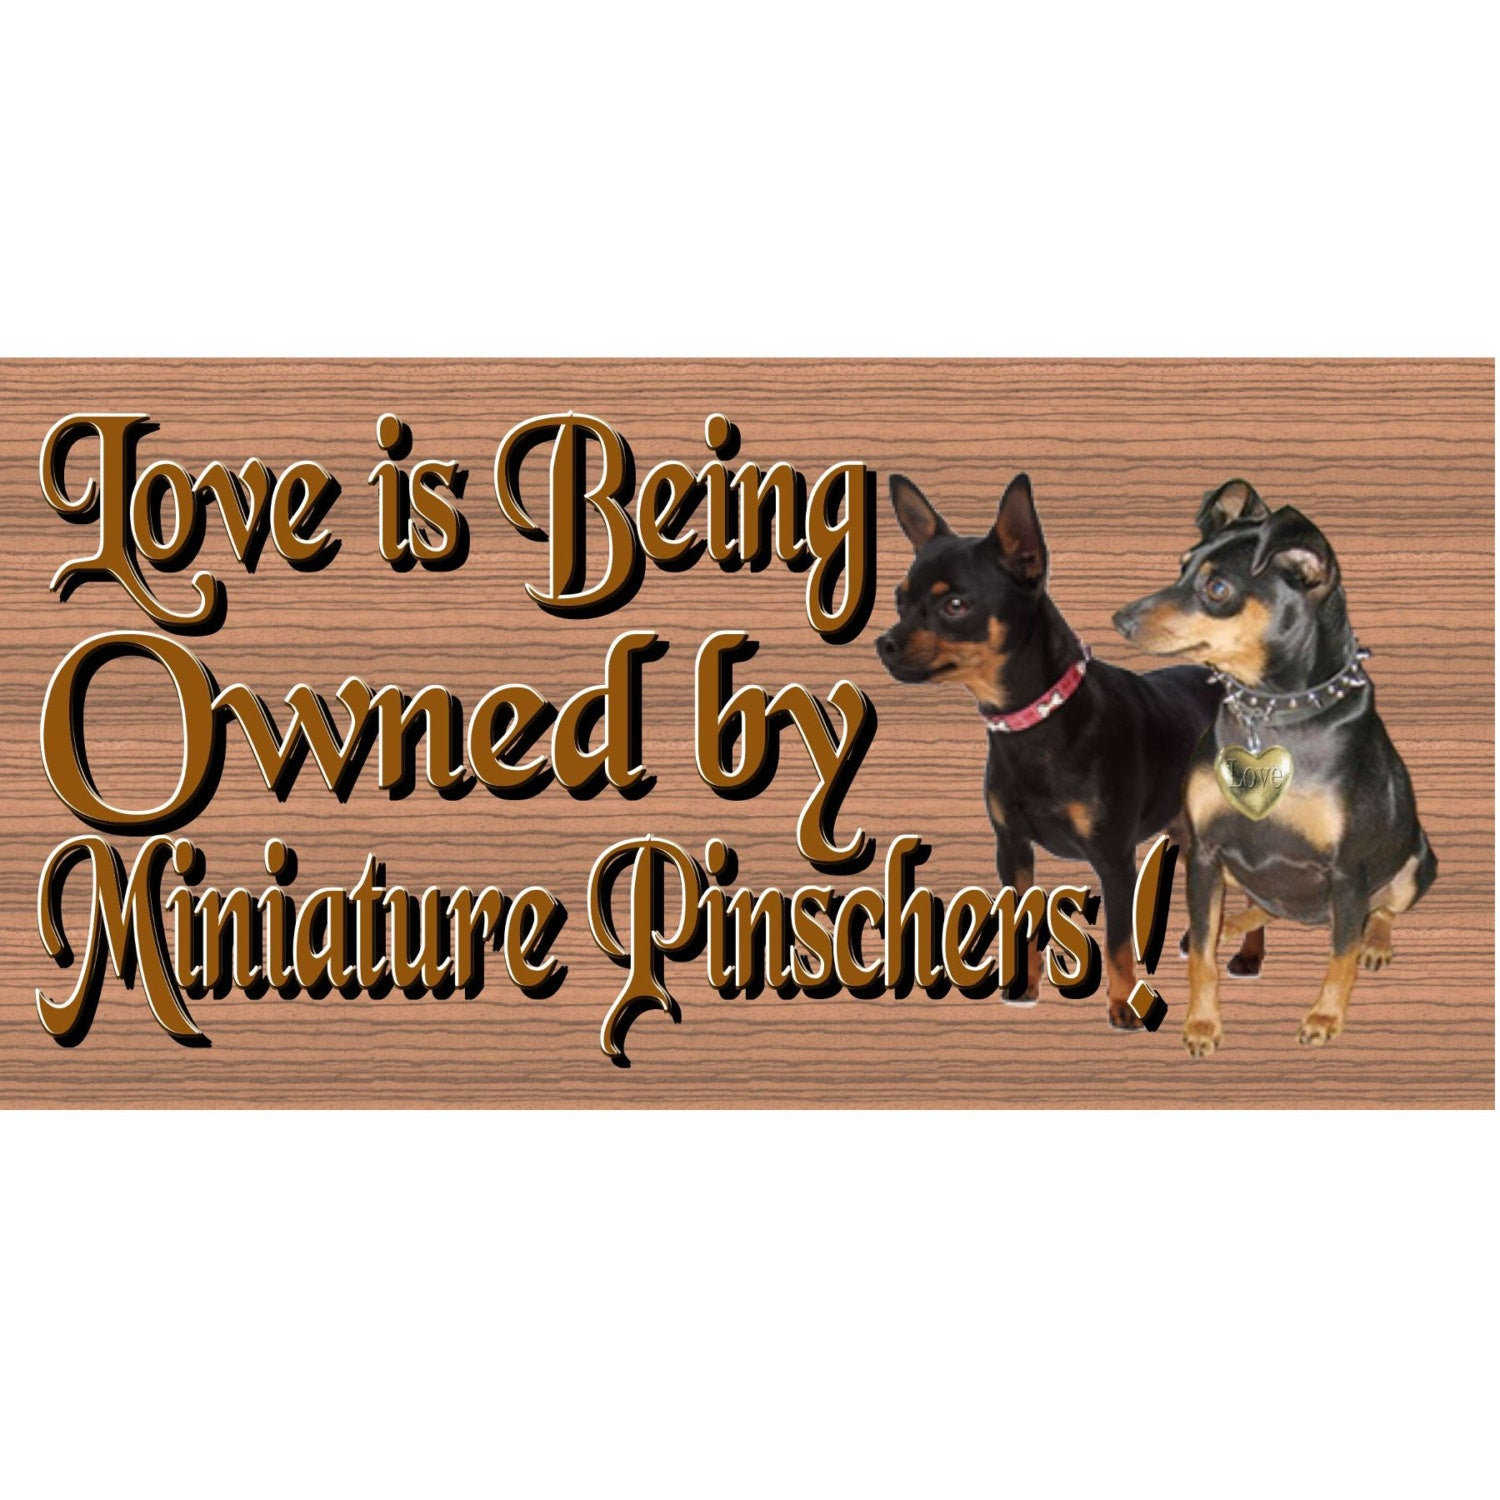 Minature Pinschers Wood Signs - Owned by Minature Pinschers GS1266  Dog signs